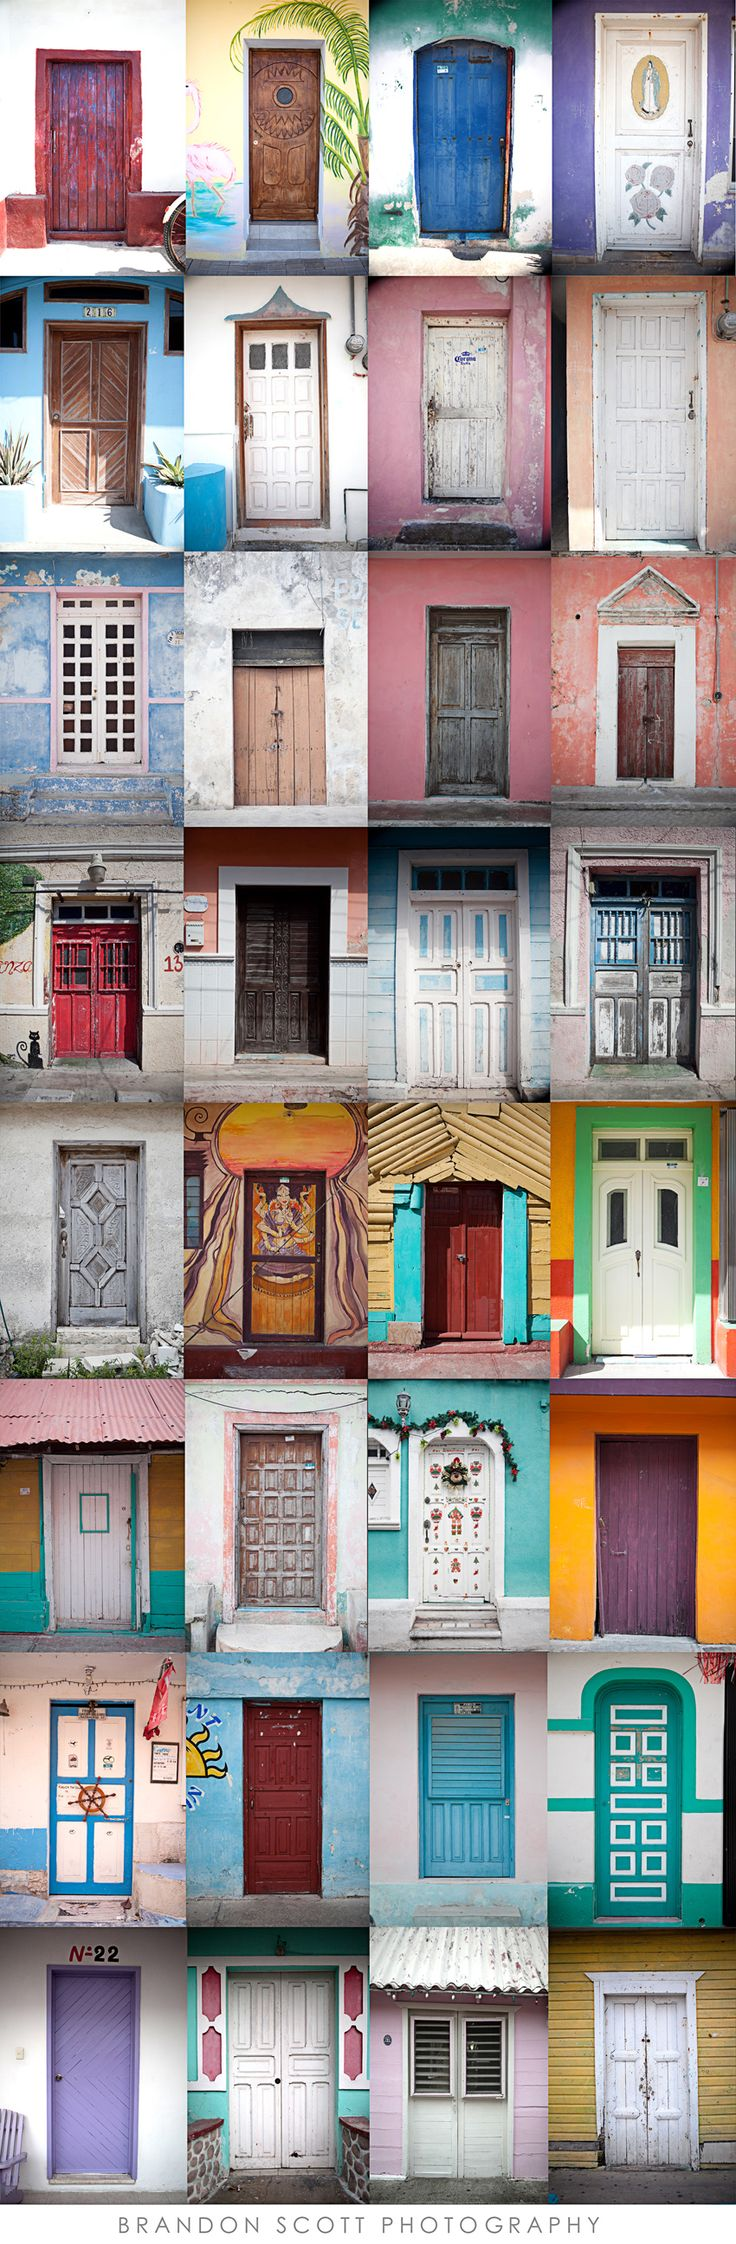 Doors, Isla Mujeres Mexico  This would be a great game to play, exploring the island.